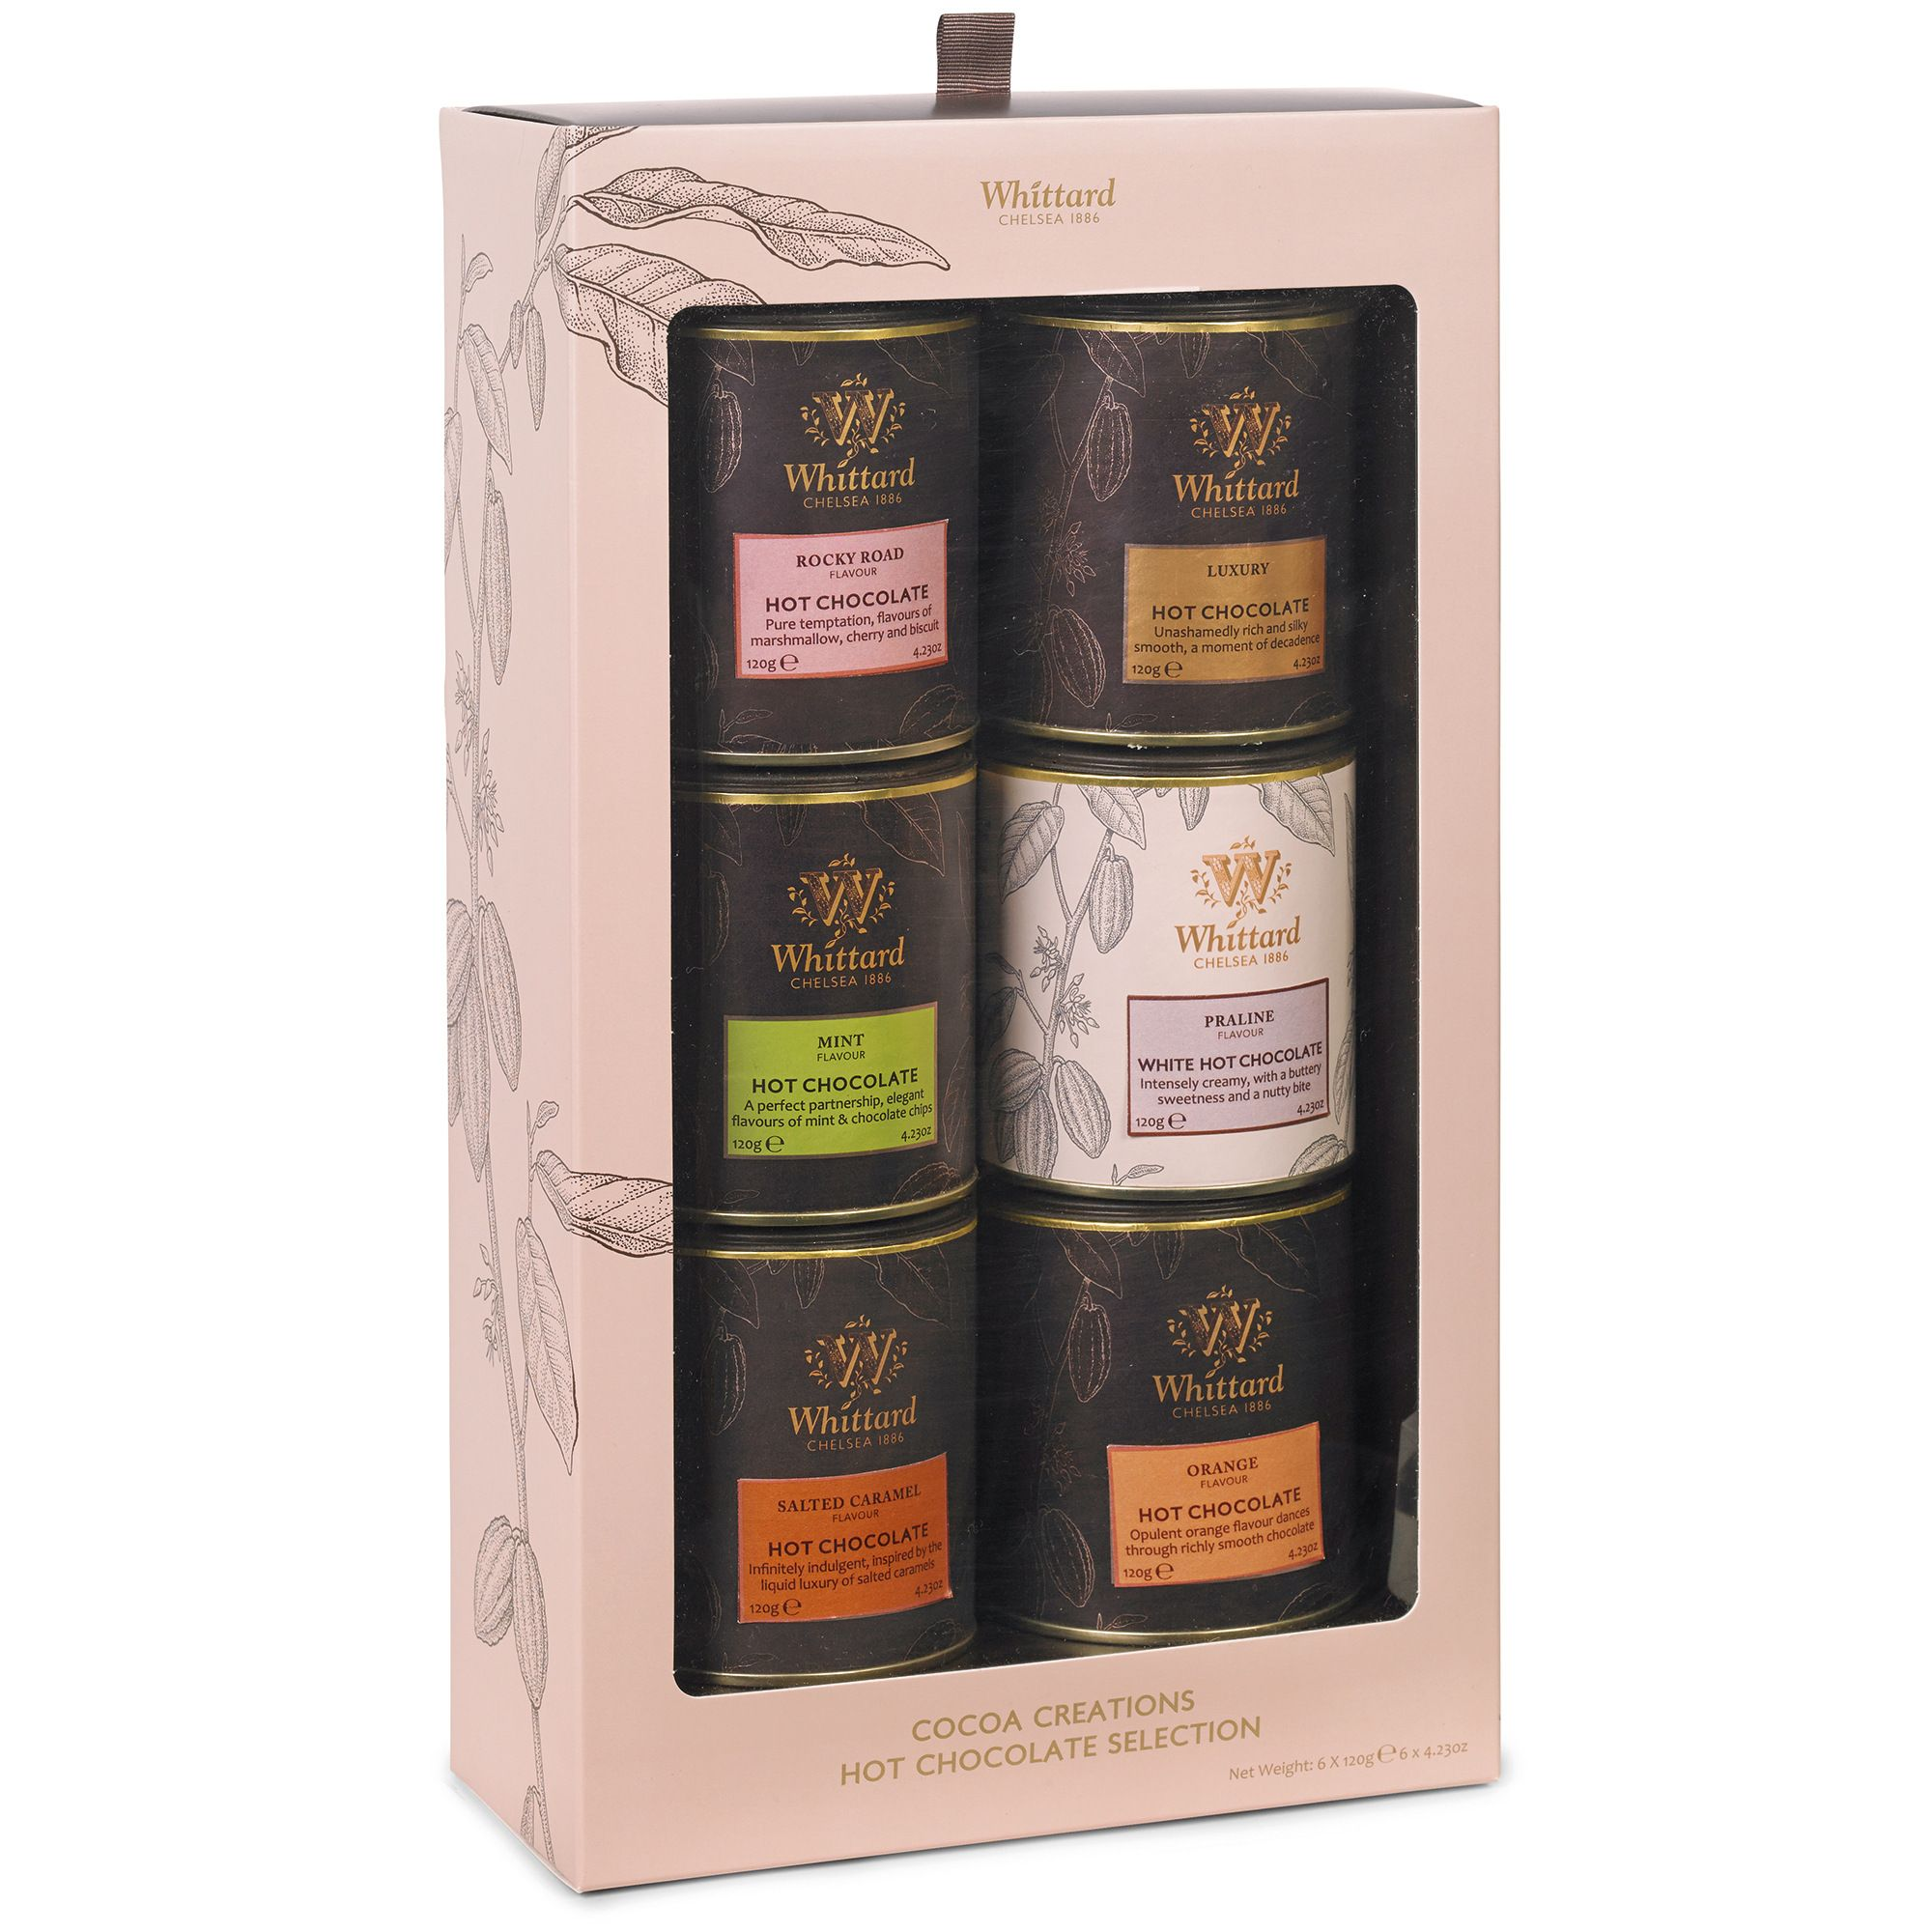 cocoa creations hot chocolate gift set hot chocolate gifts